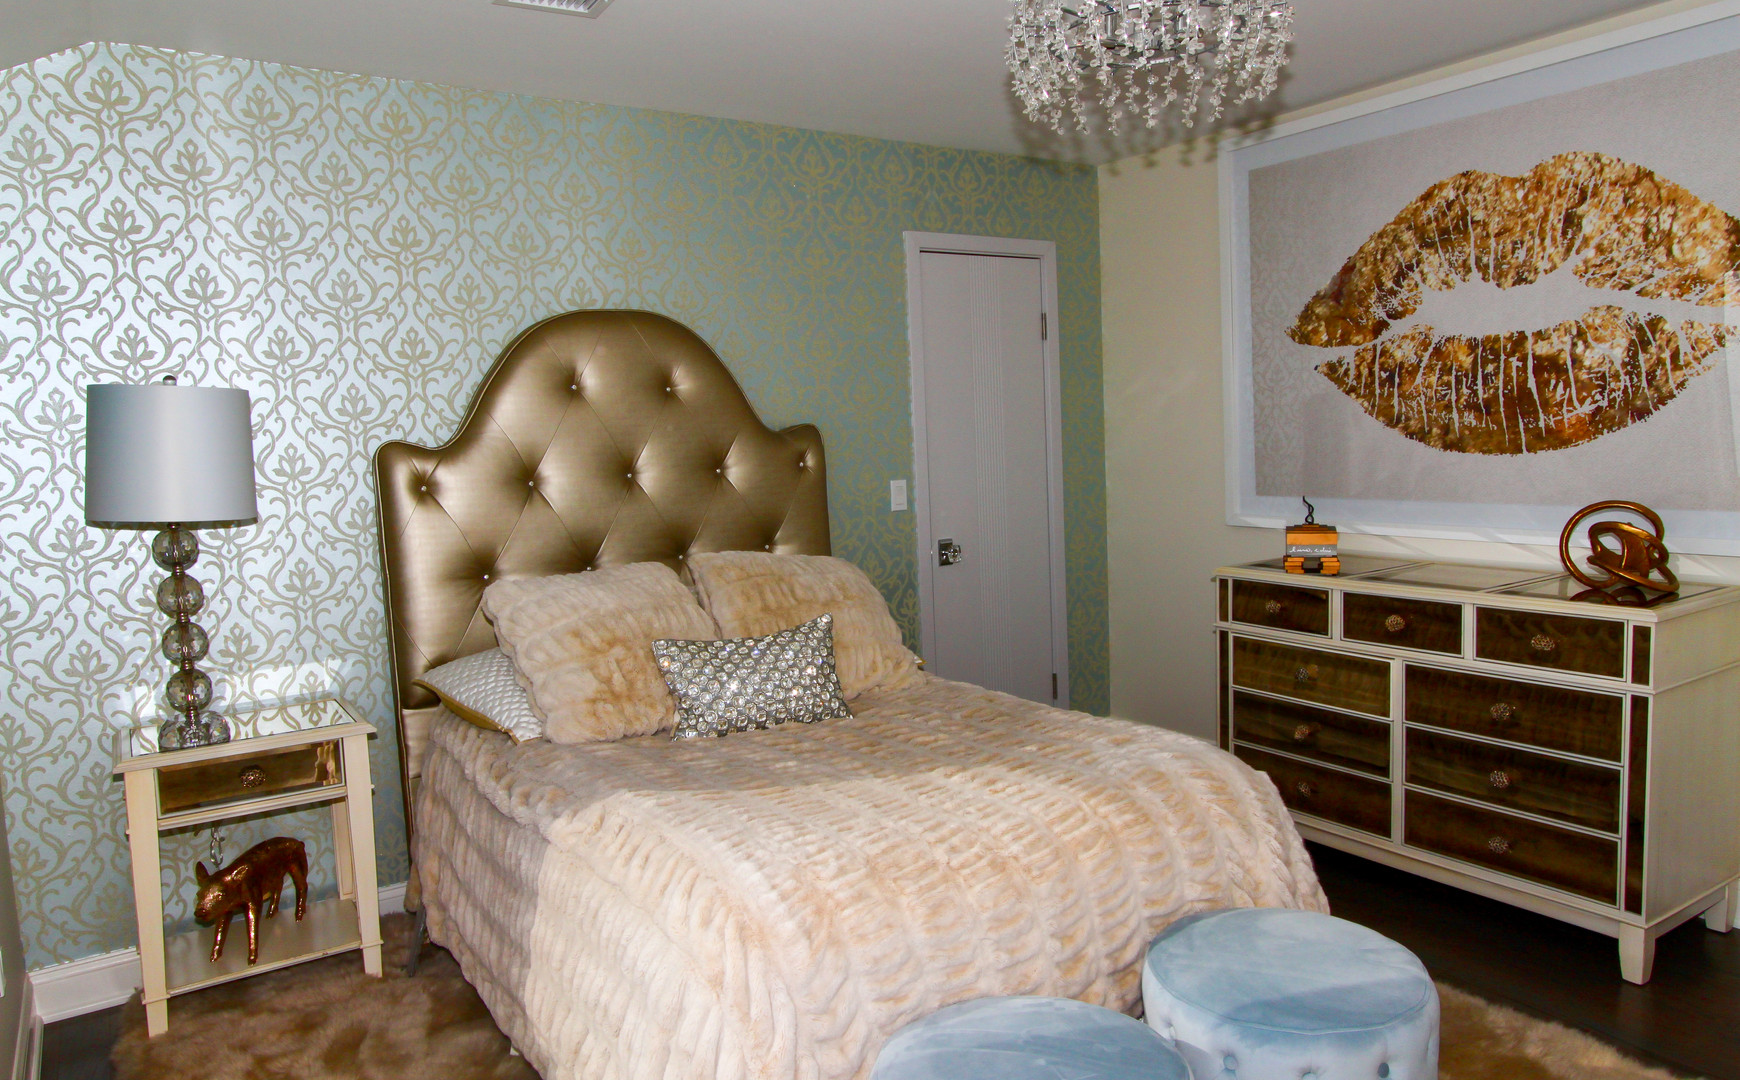 Chic Guest Bedroom with Custom Bedframe.